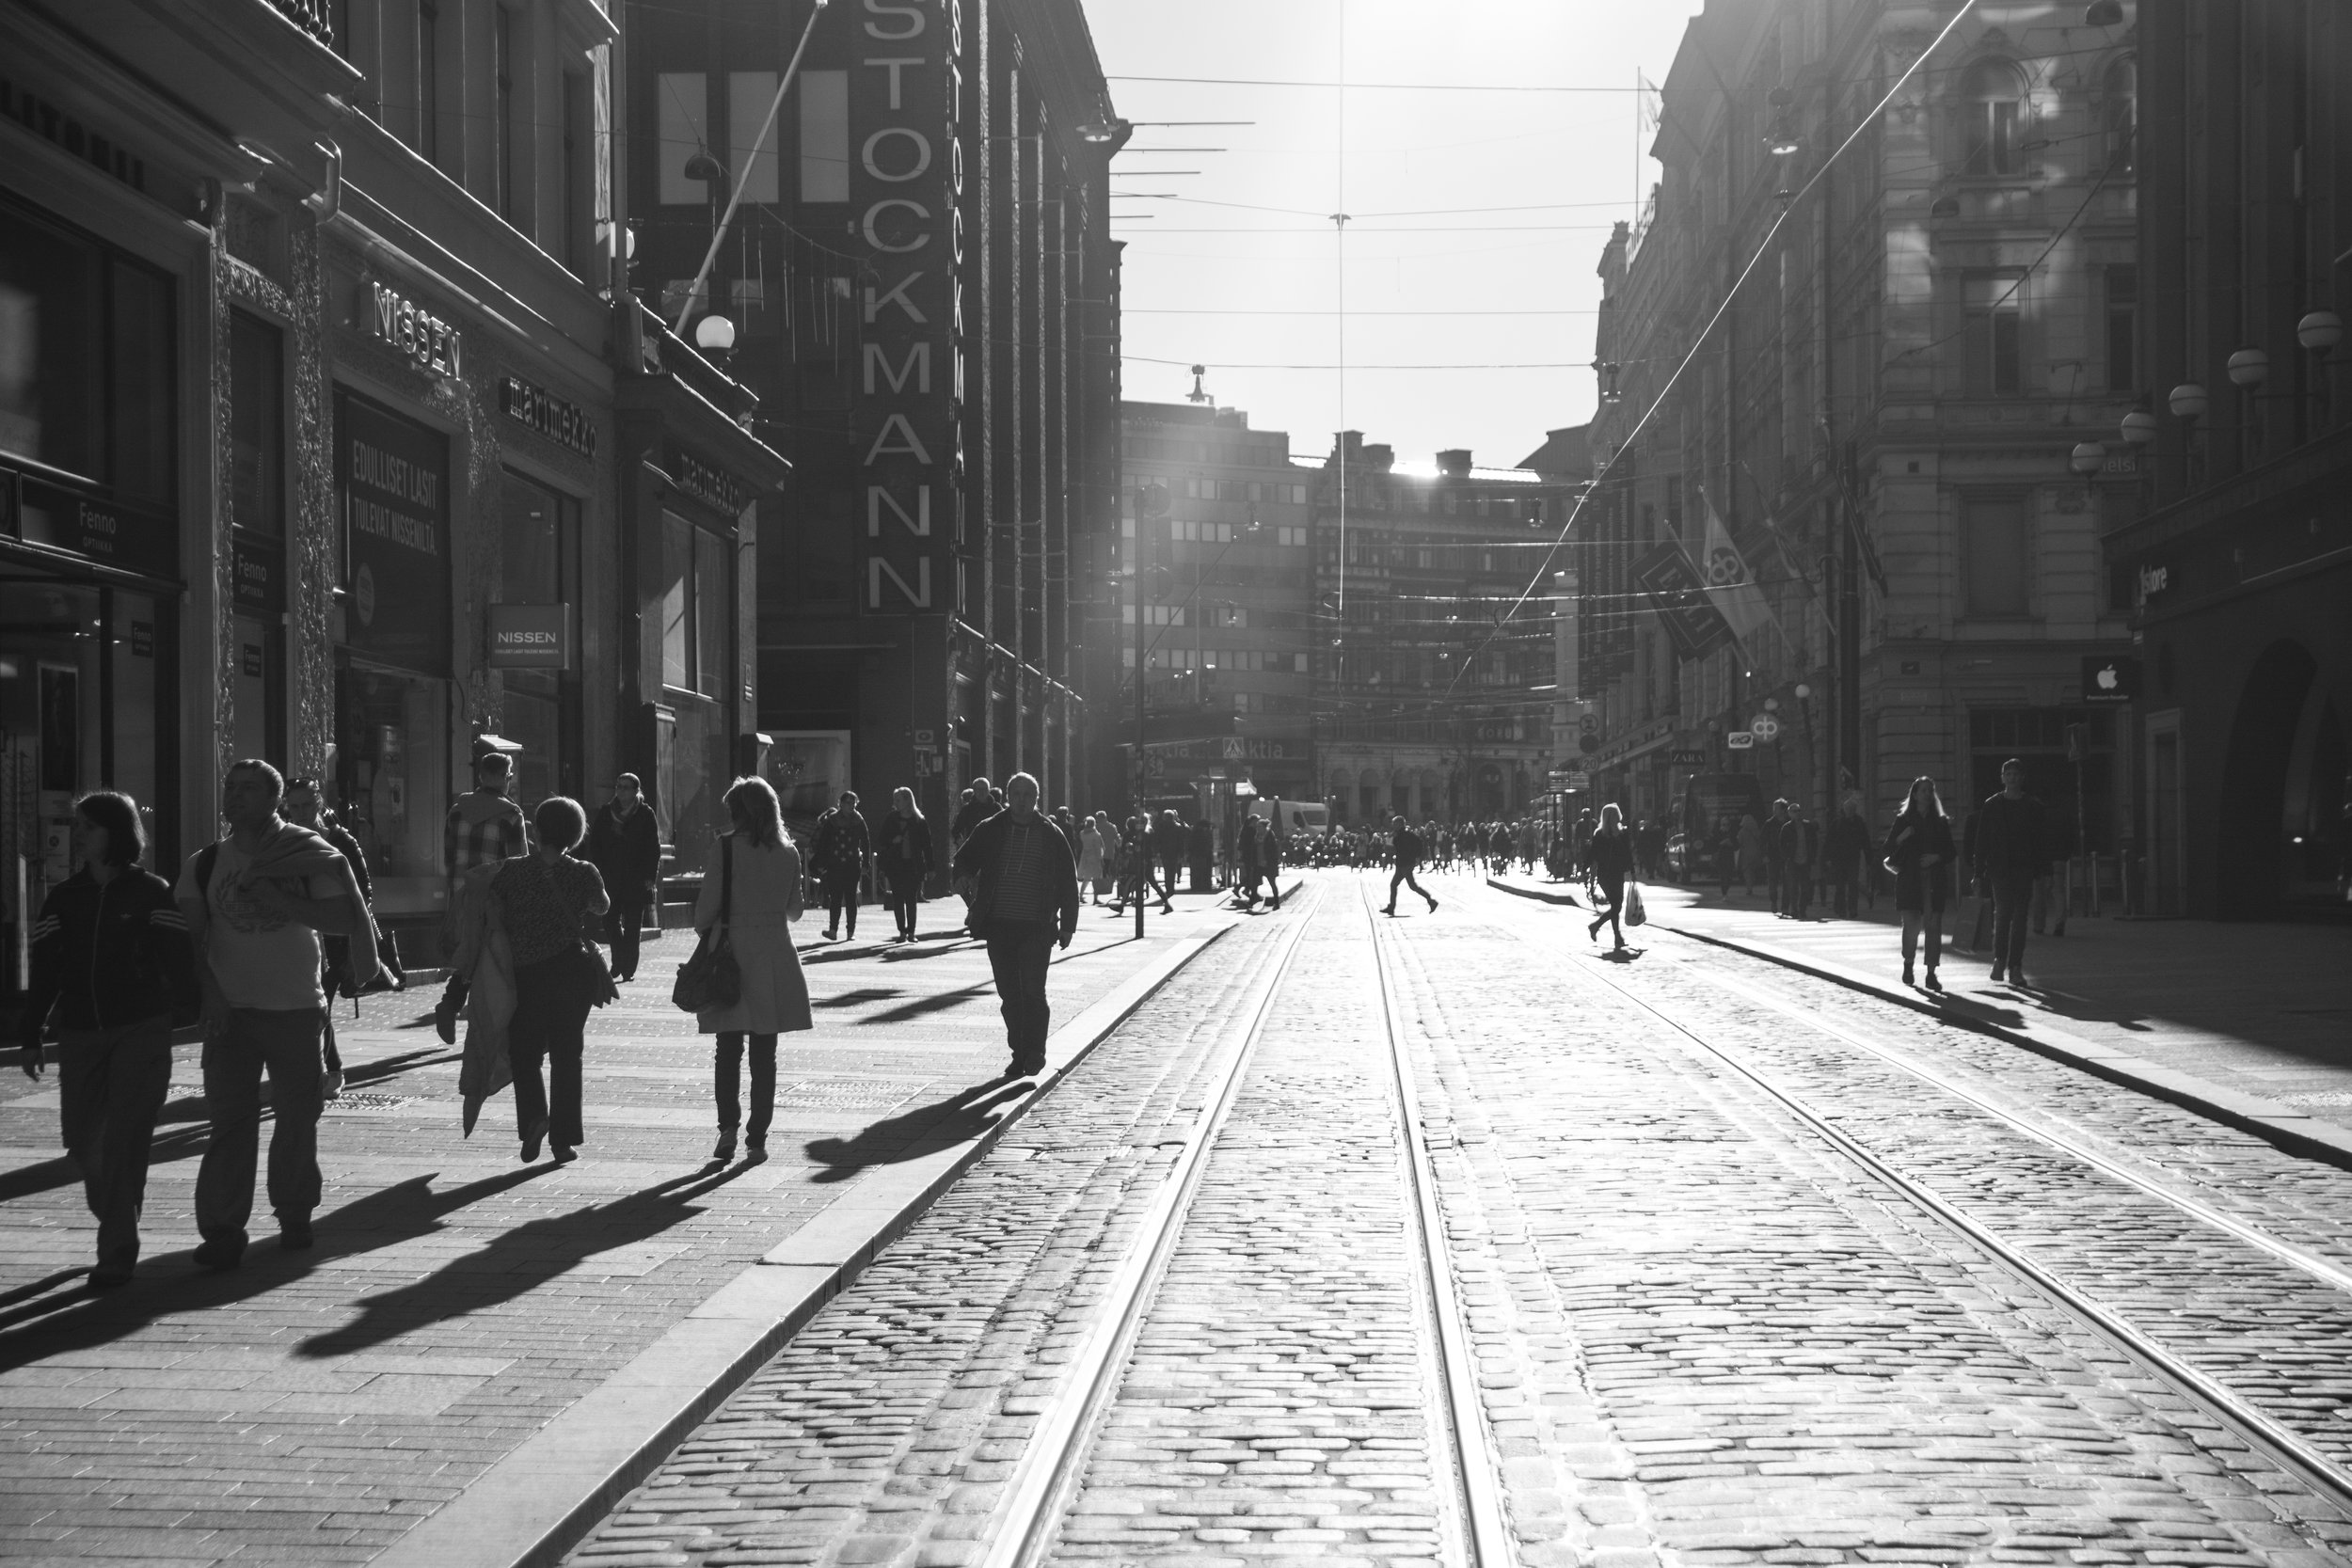 Downtown Helsinki is constantly rated as having one of the highest standards of living in the world.